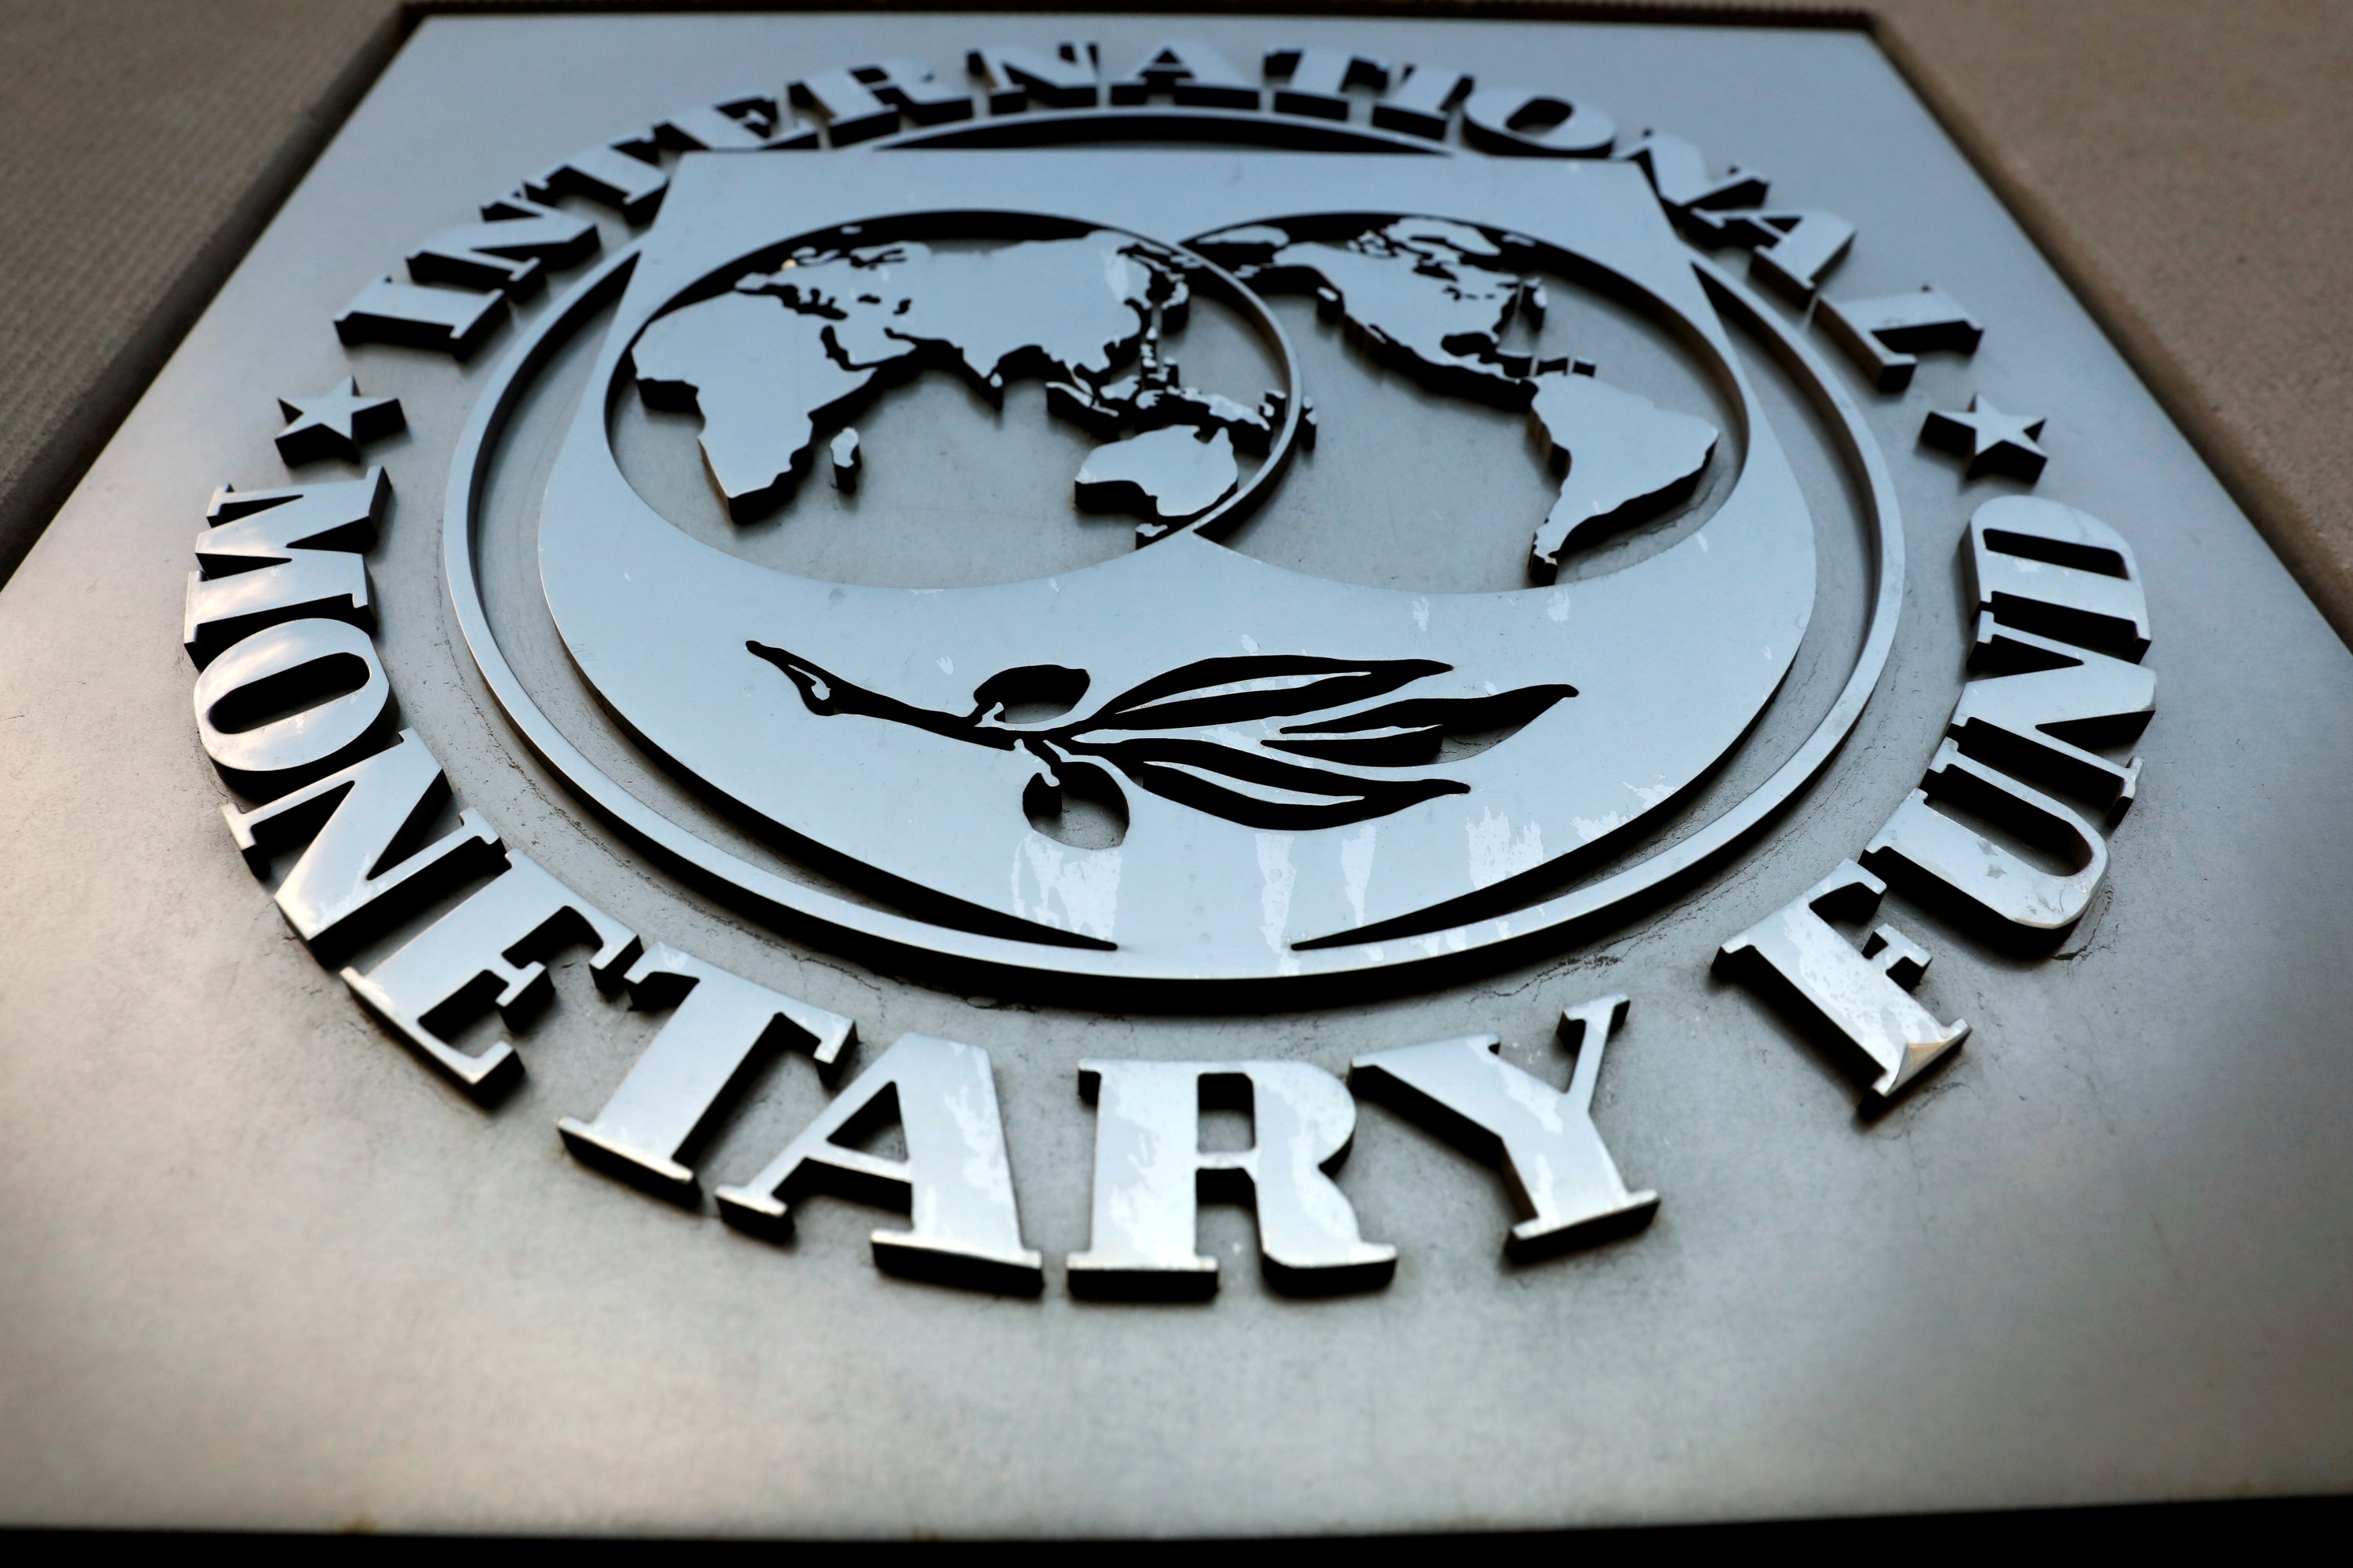 IMF approves US$650bn SDR allocation of special drawing rights